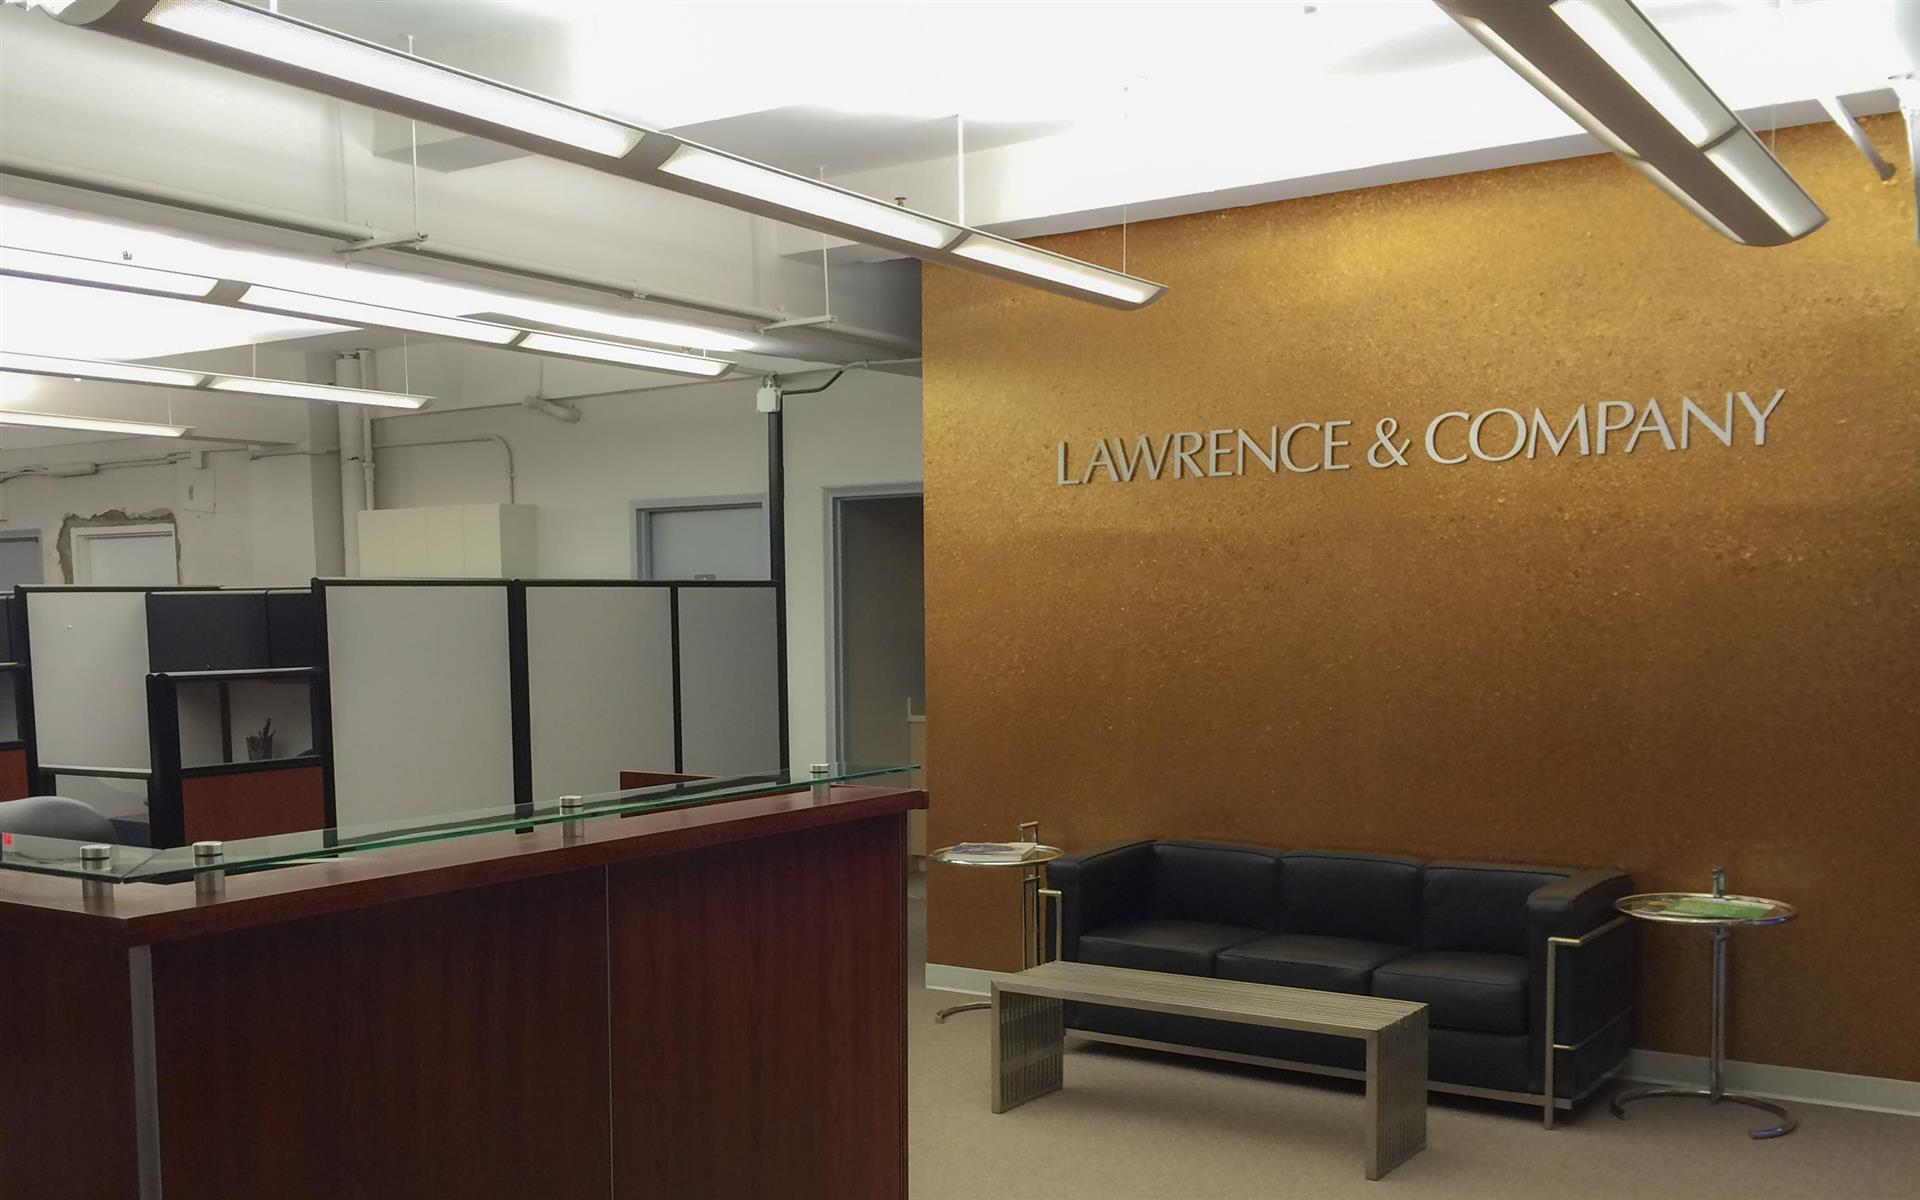 212 West 35th - 212 West 35th St, NYC - Office Suite